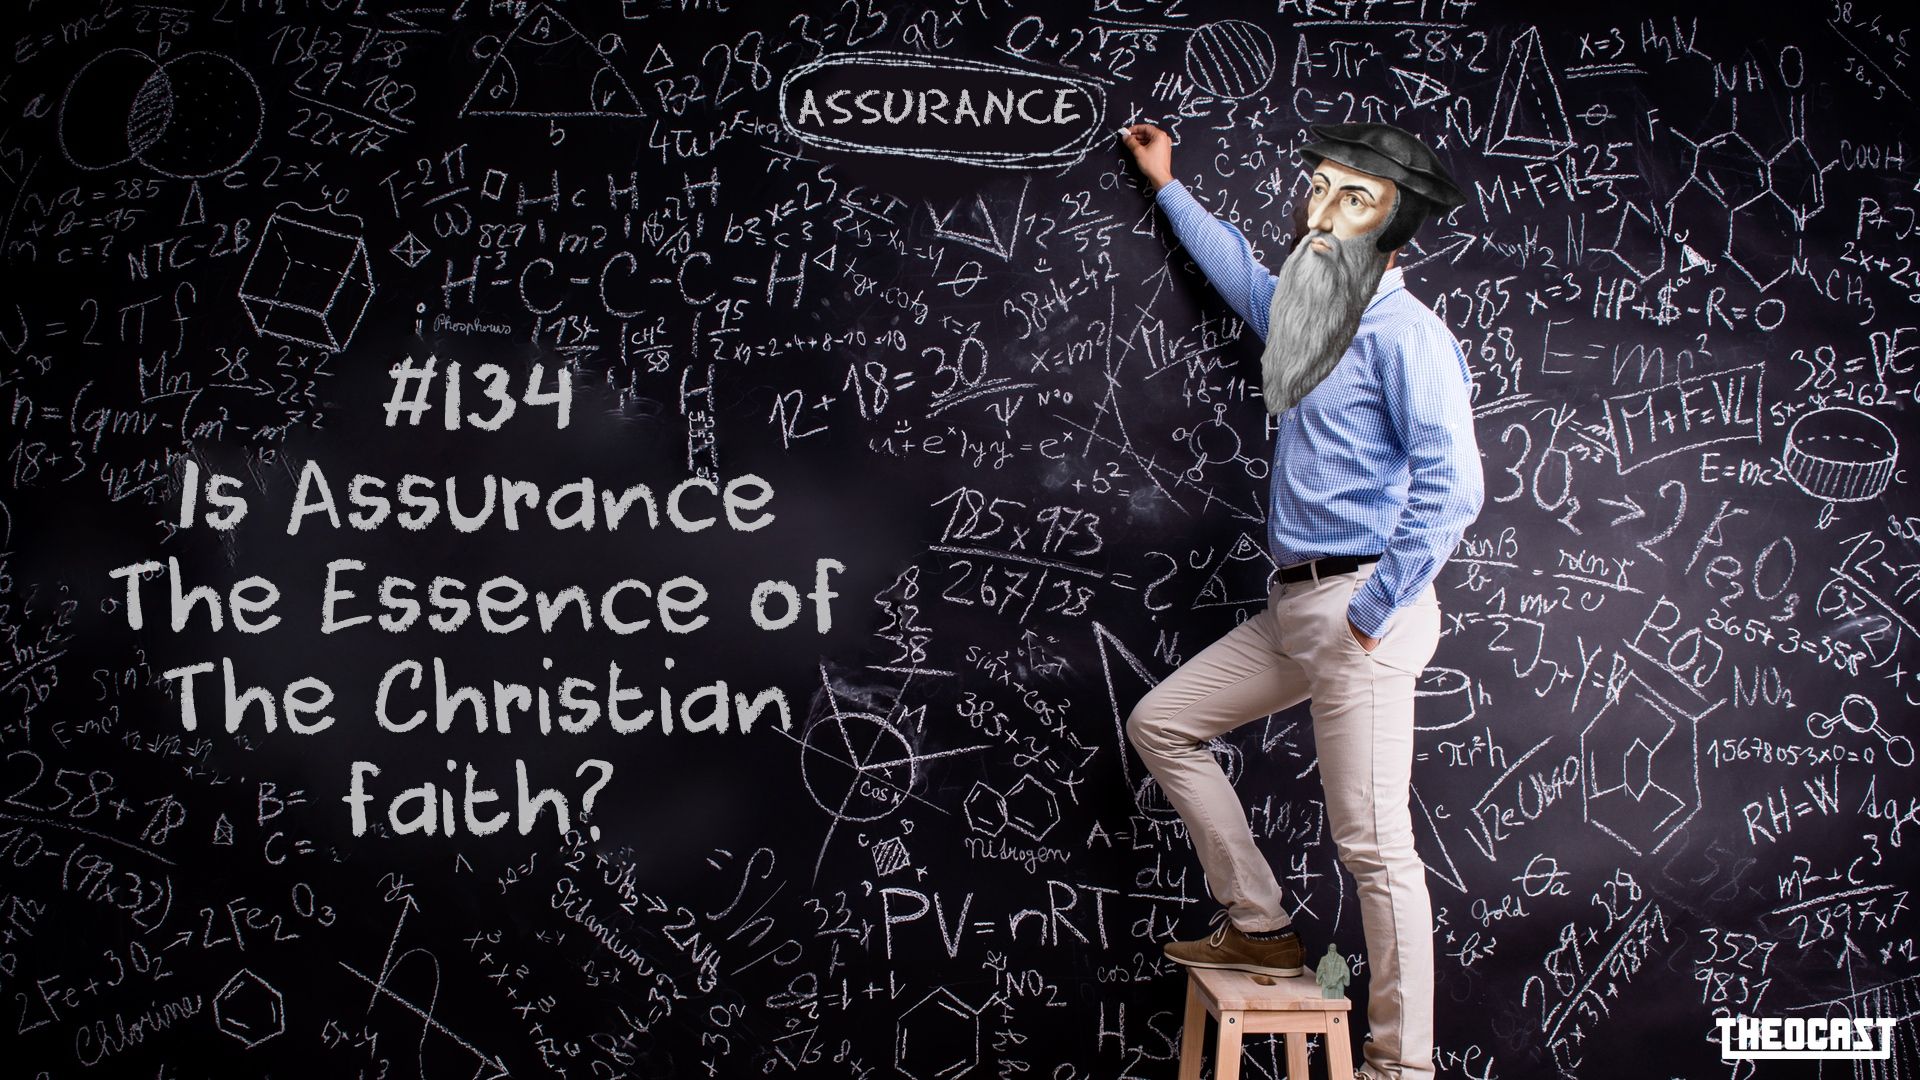 #134: Is Assurance The Essence of The Christian Faith? (Revisited)